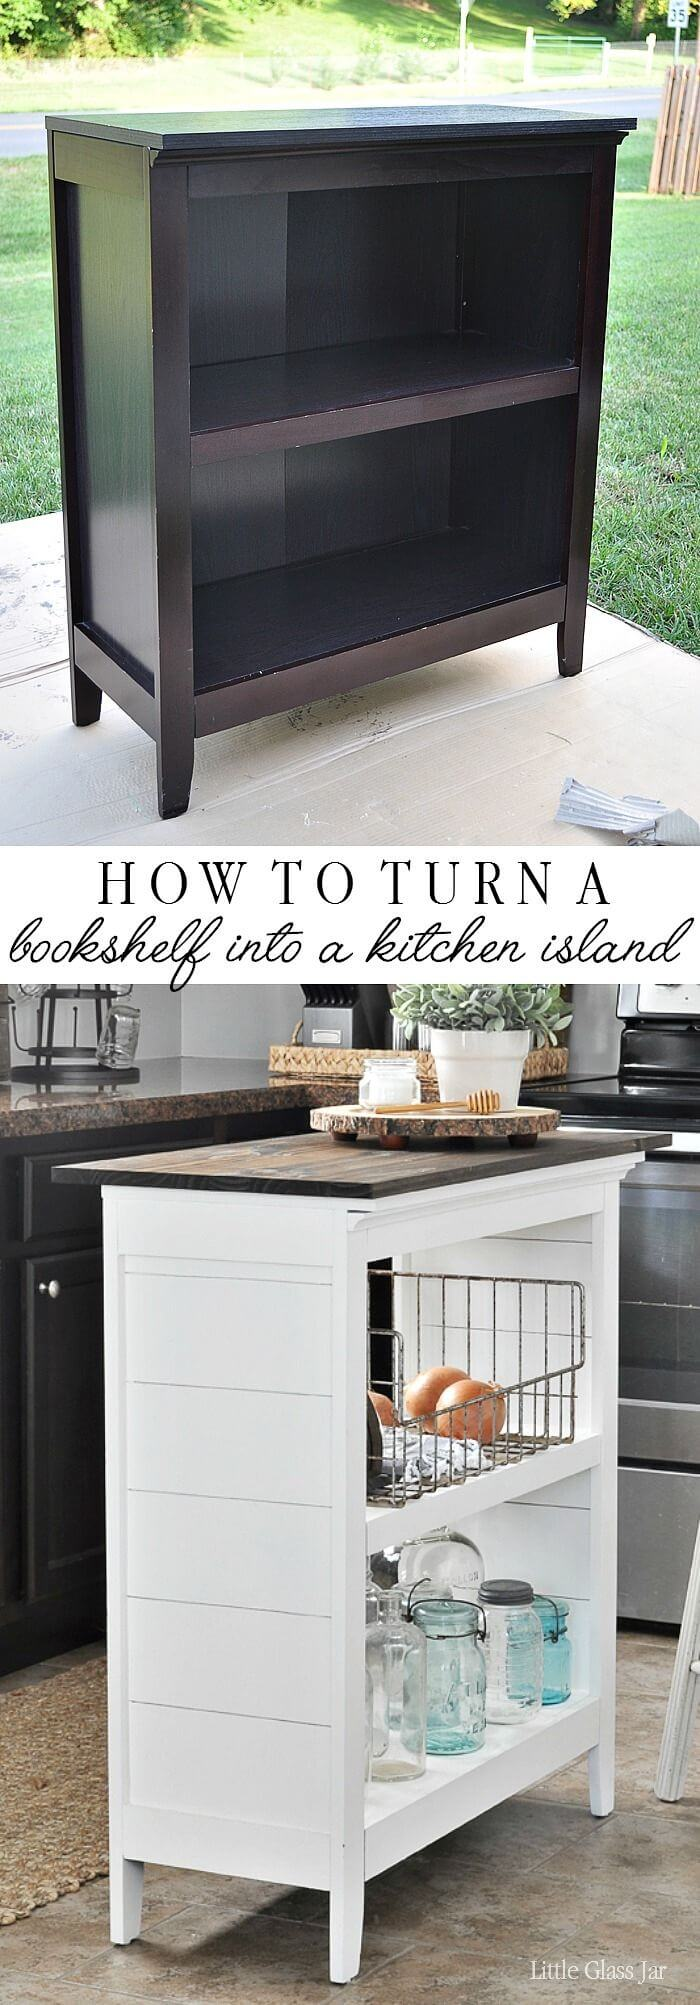 Give an Old Bookshelf a New Life as an Island